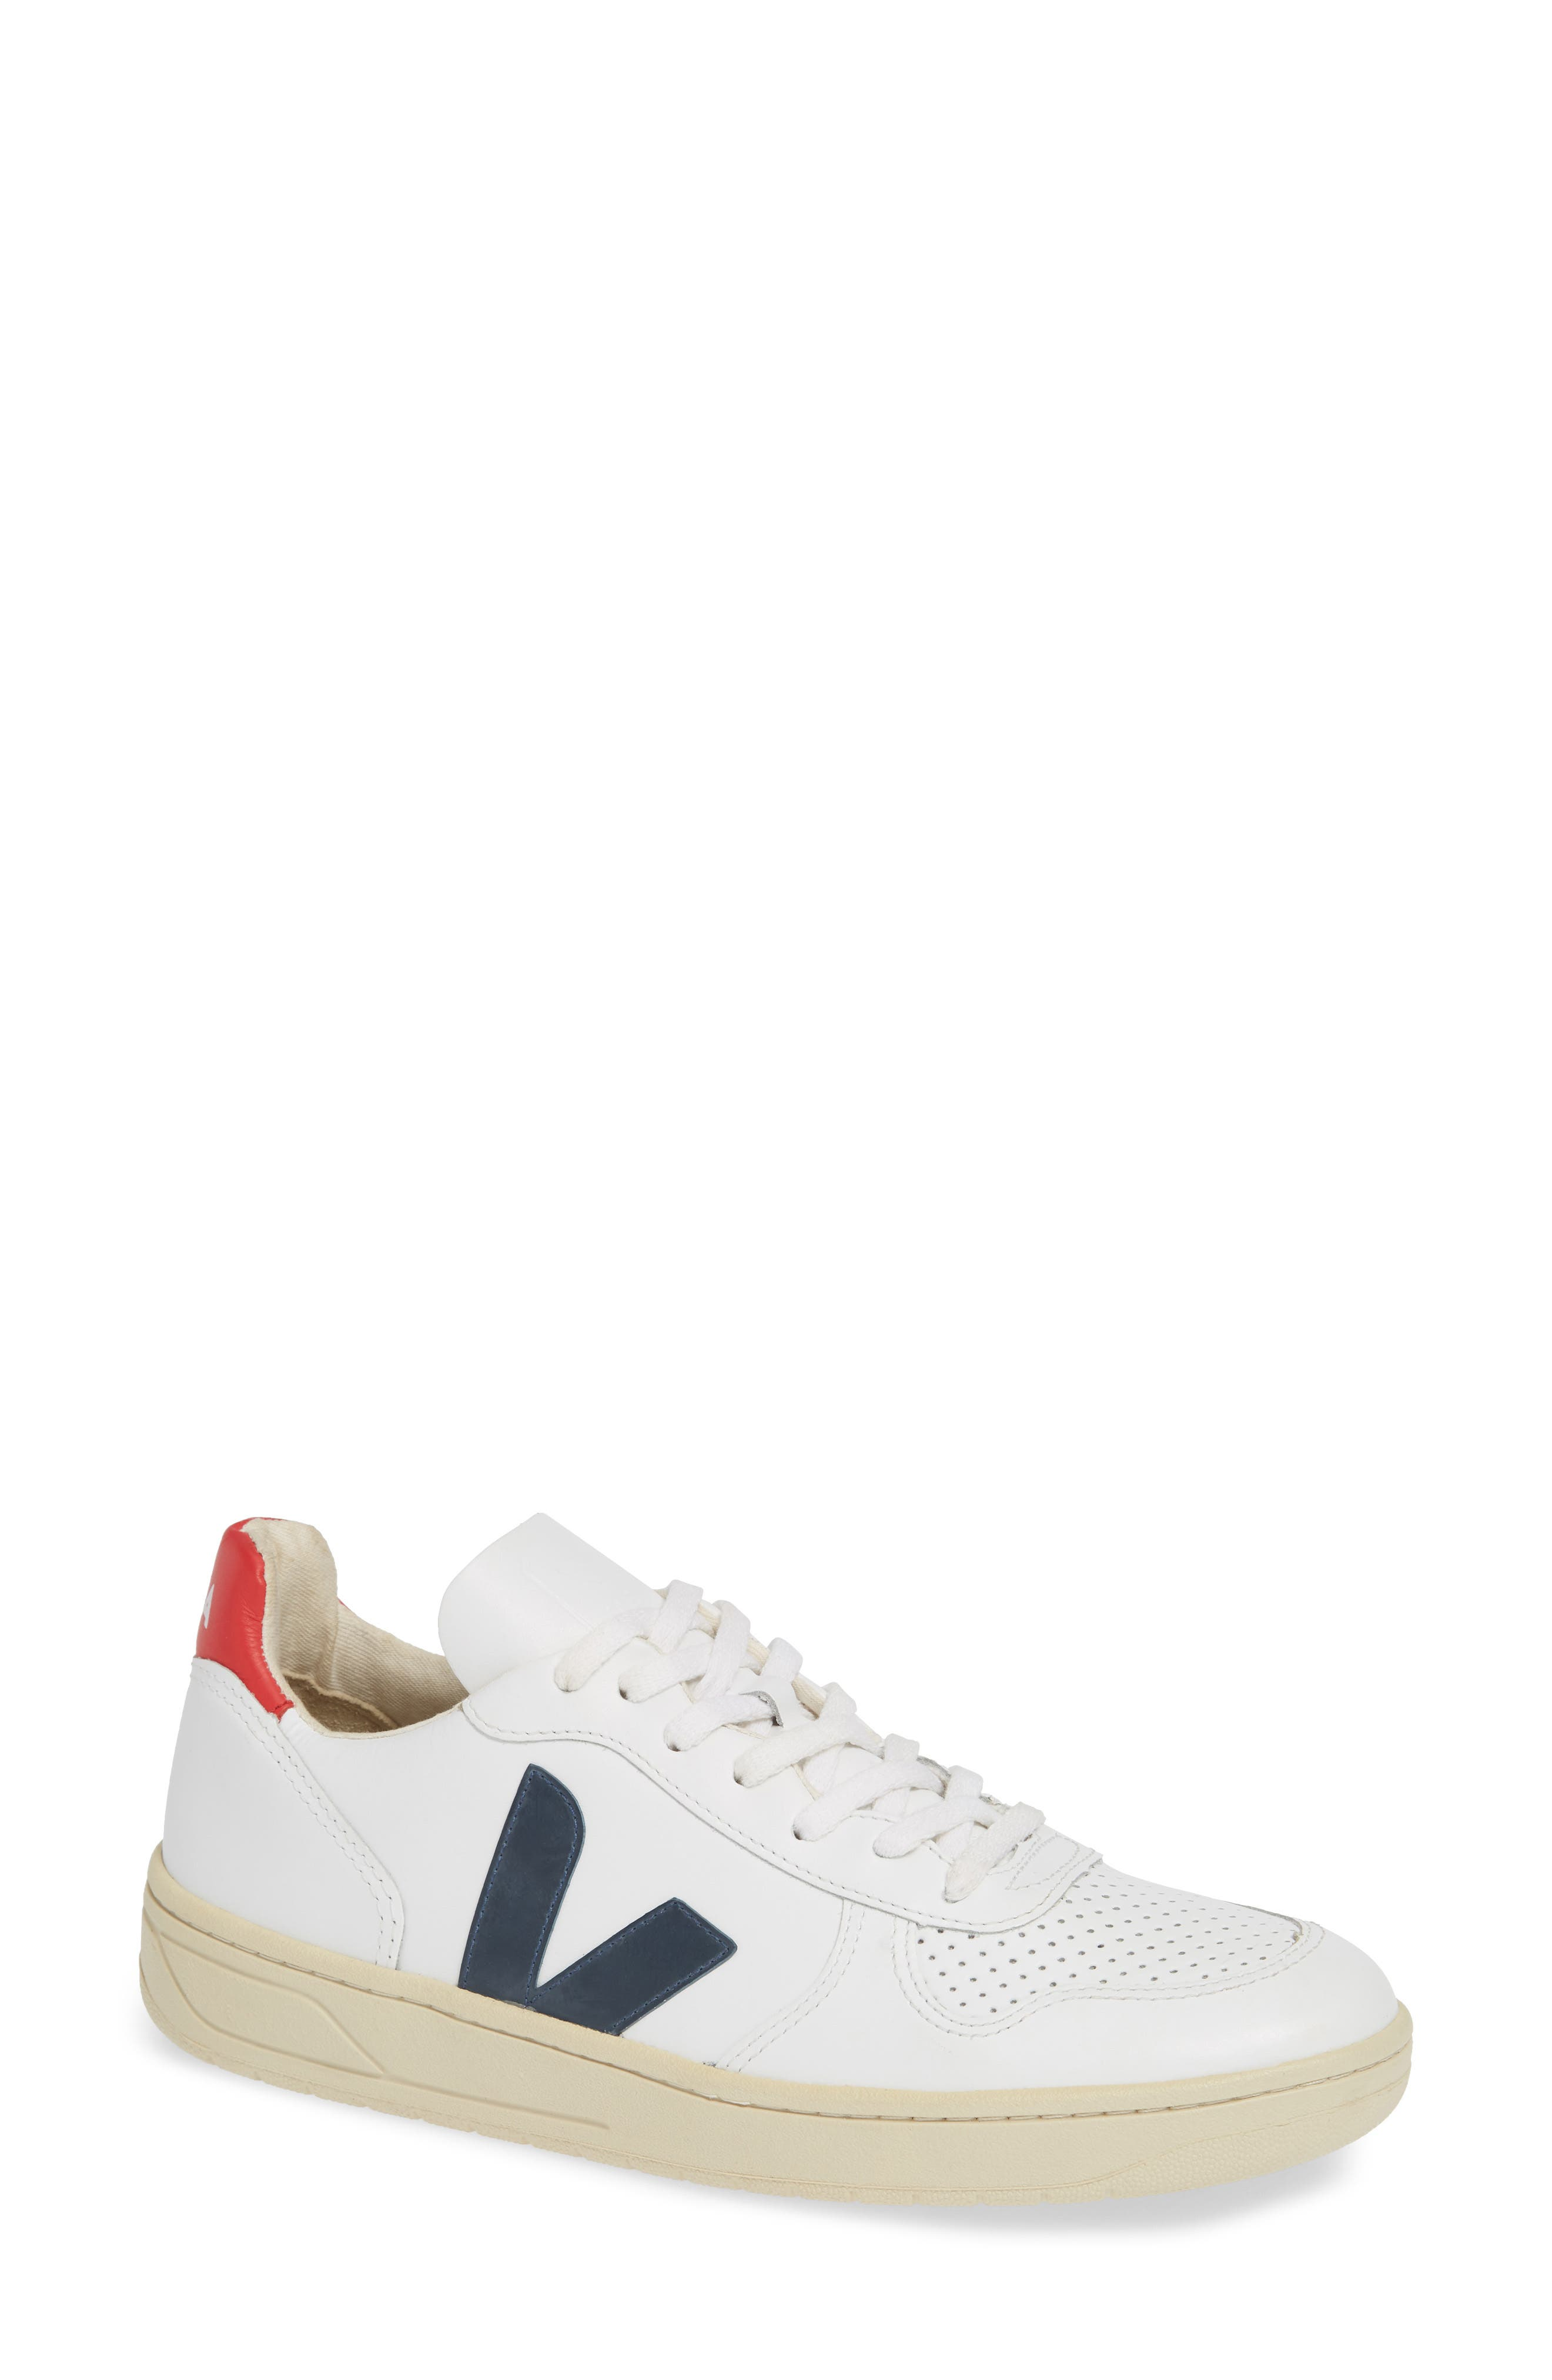 Sleek and classic, a simple V-logo brands this court-inspired pair that\'s made to make a difference. Crafted from leather sourced from Rio Grande do Sul farms and tanned according to REACH norms, the lining is made from recycled fabric and the soles are wild Amazonian rubber. Style Name: Veja V-10 Sneaker (Women). Style Number: 5713334 1. Available in stores.